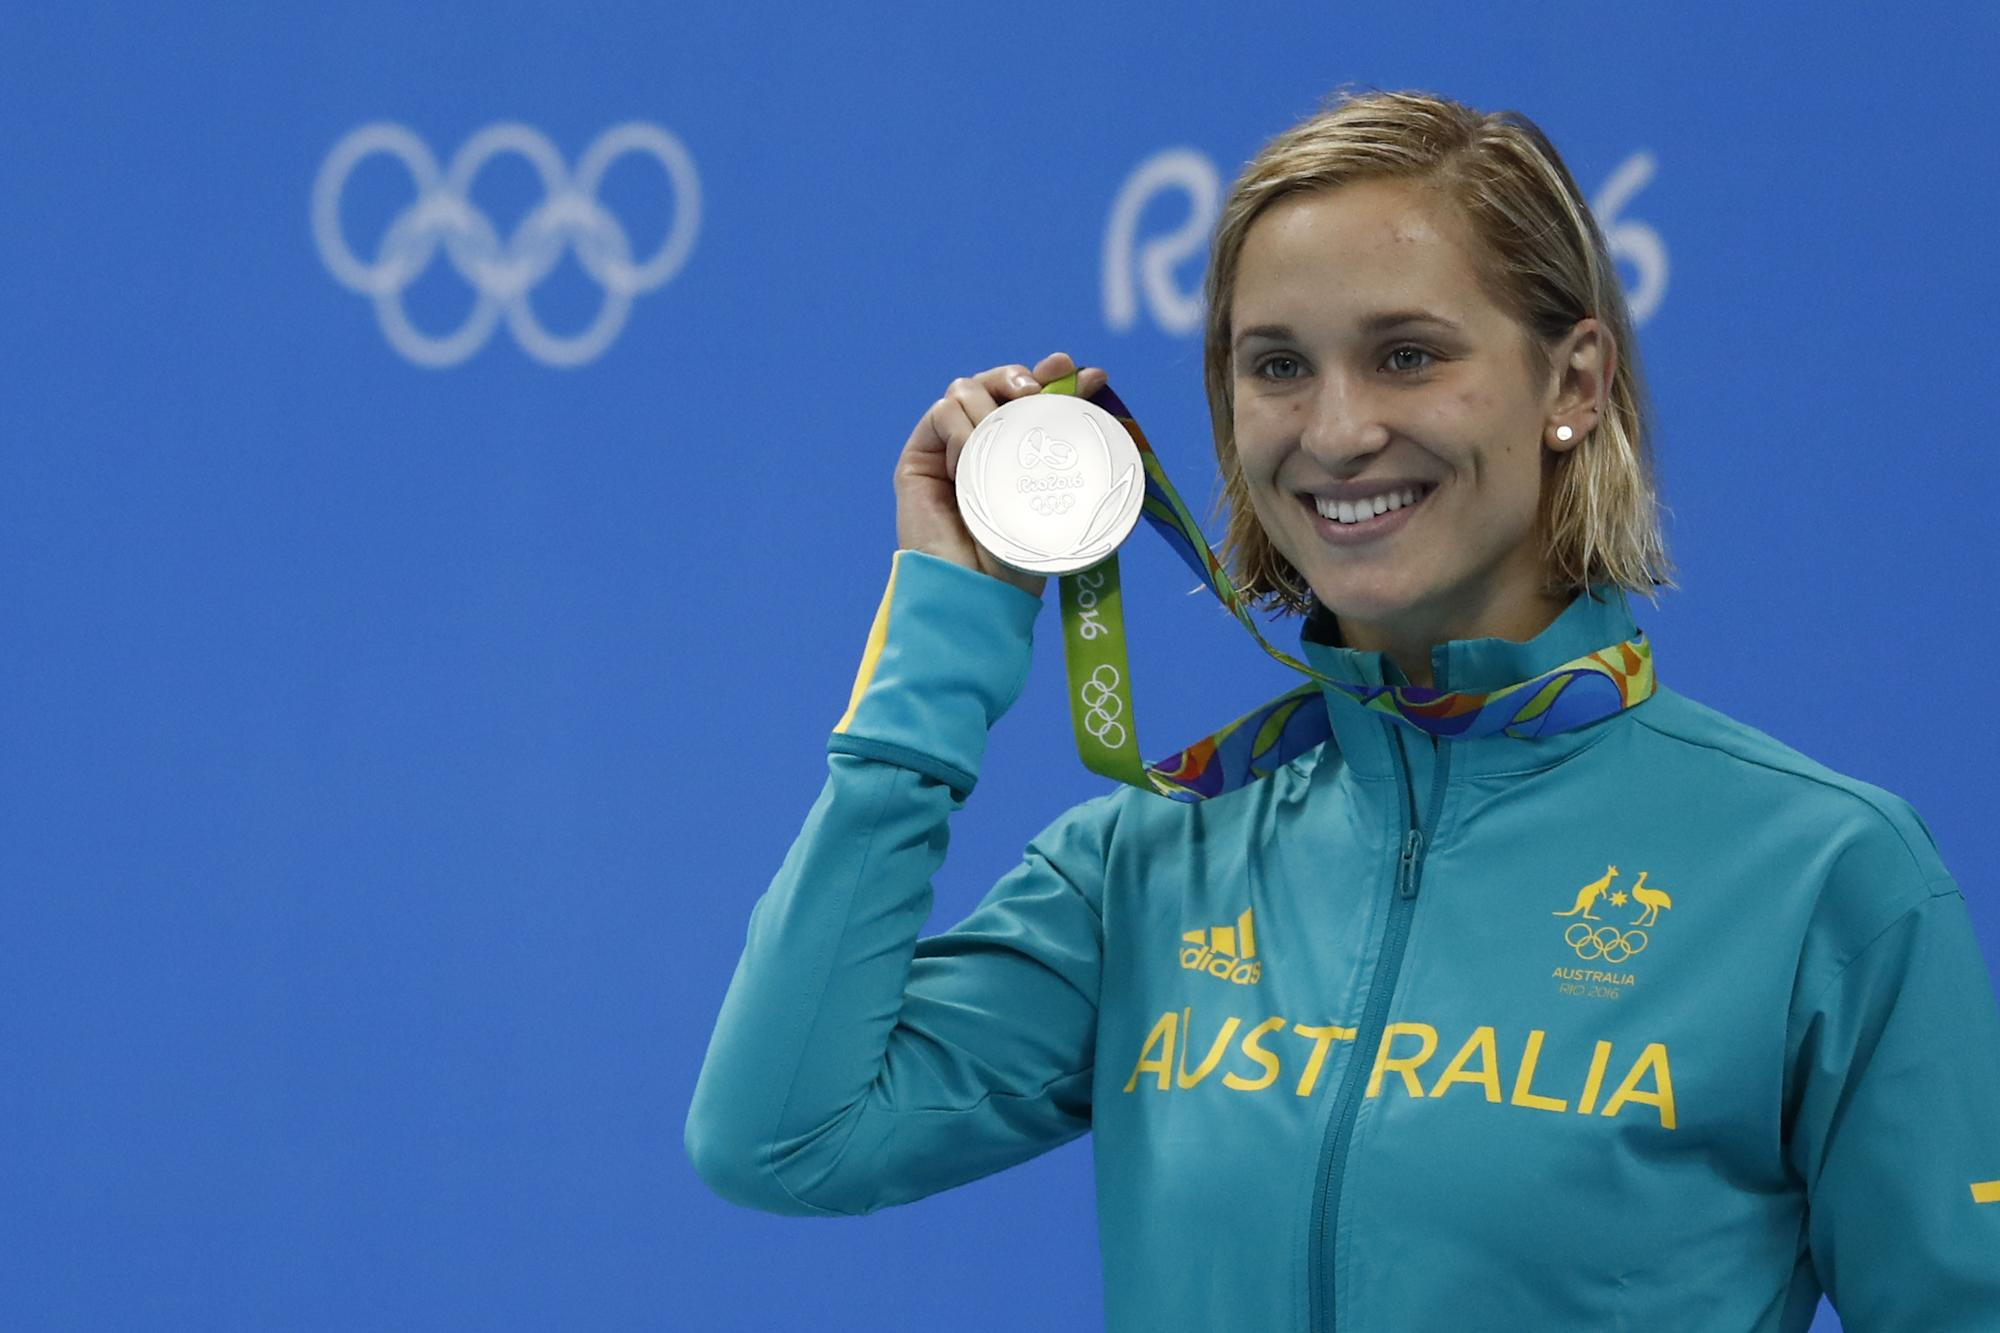 Top Australian Swimmer Madeline Groves Pulls Out of Olympic Trials Because of 'Misogynistic Perverts'